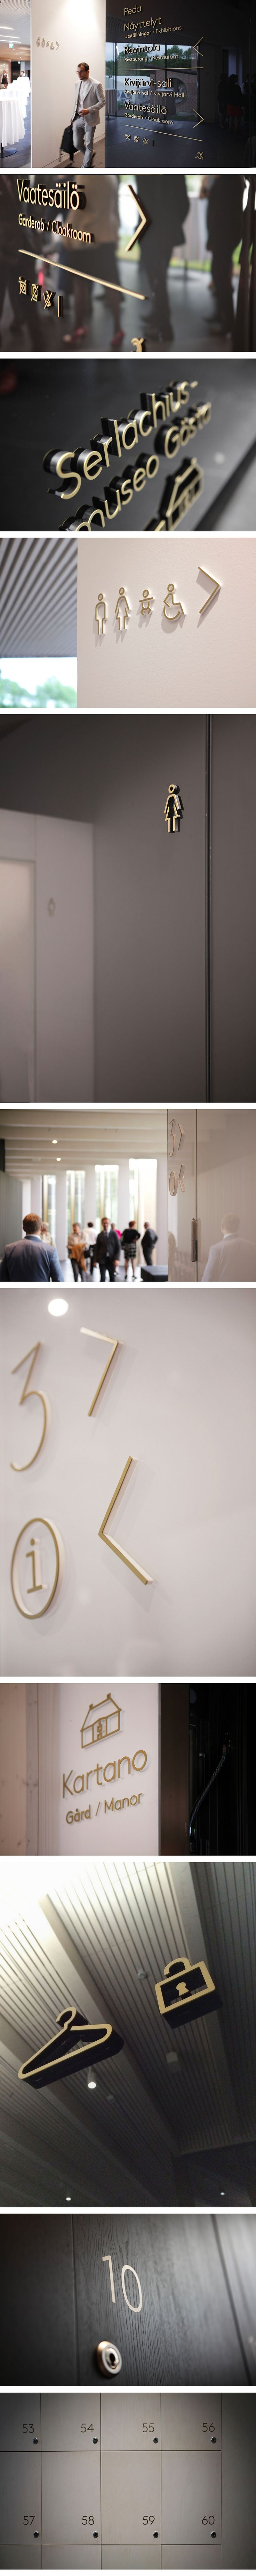 Serlachius Museum signage project by petitcomite.net. Lovely consistent signage. Right through to the rest room signs.